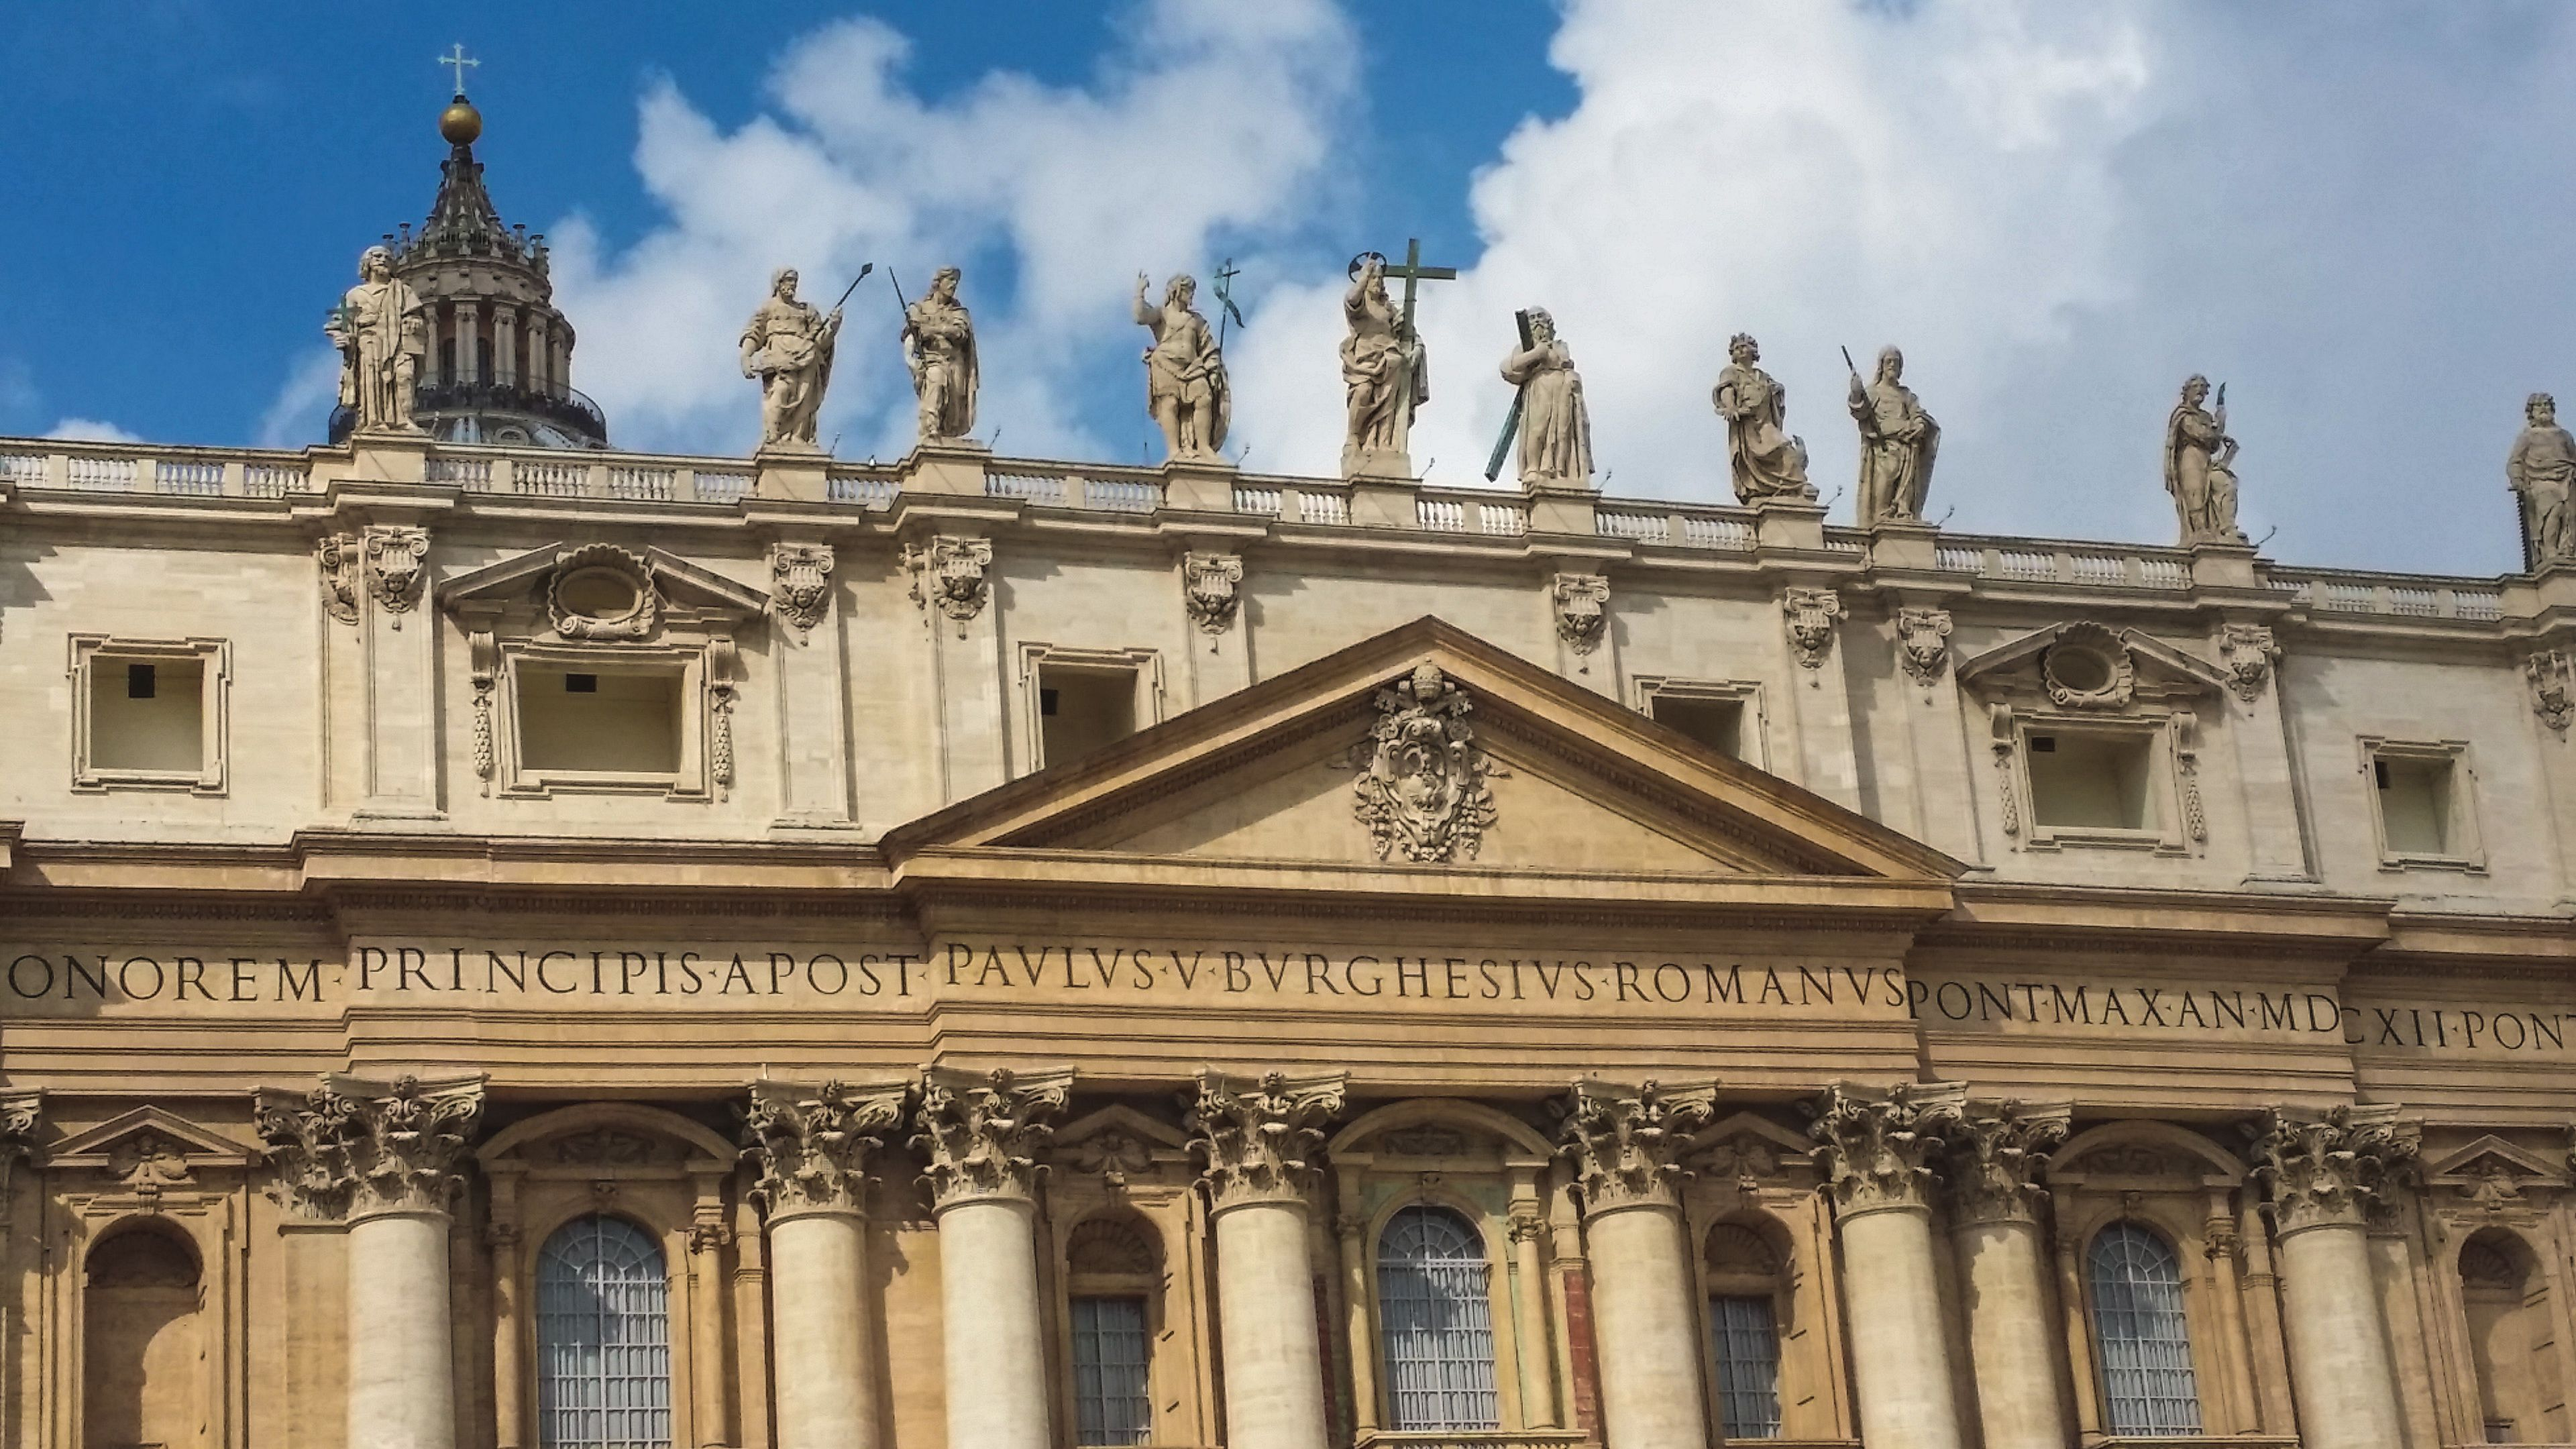 Exterior view of St. Peter's Basilica.